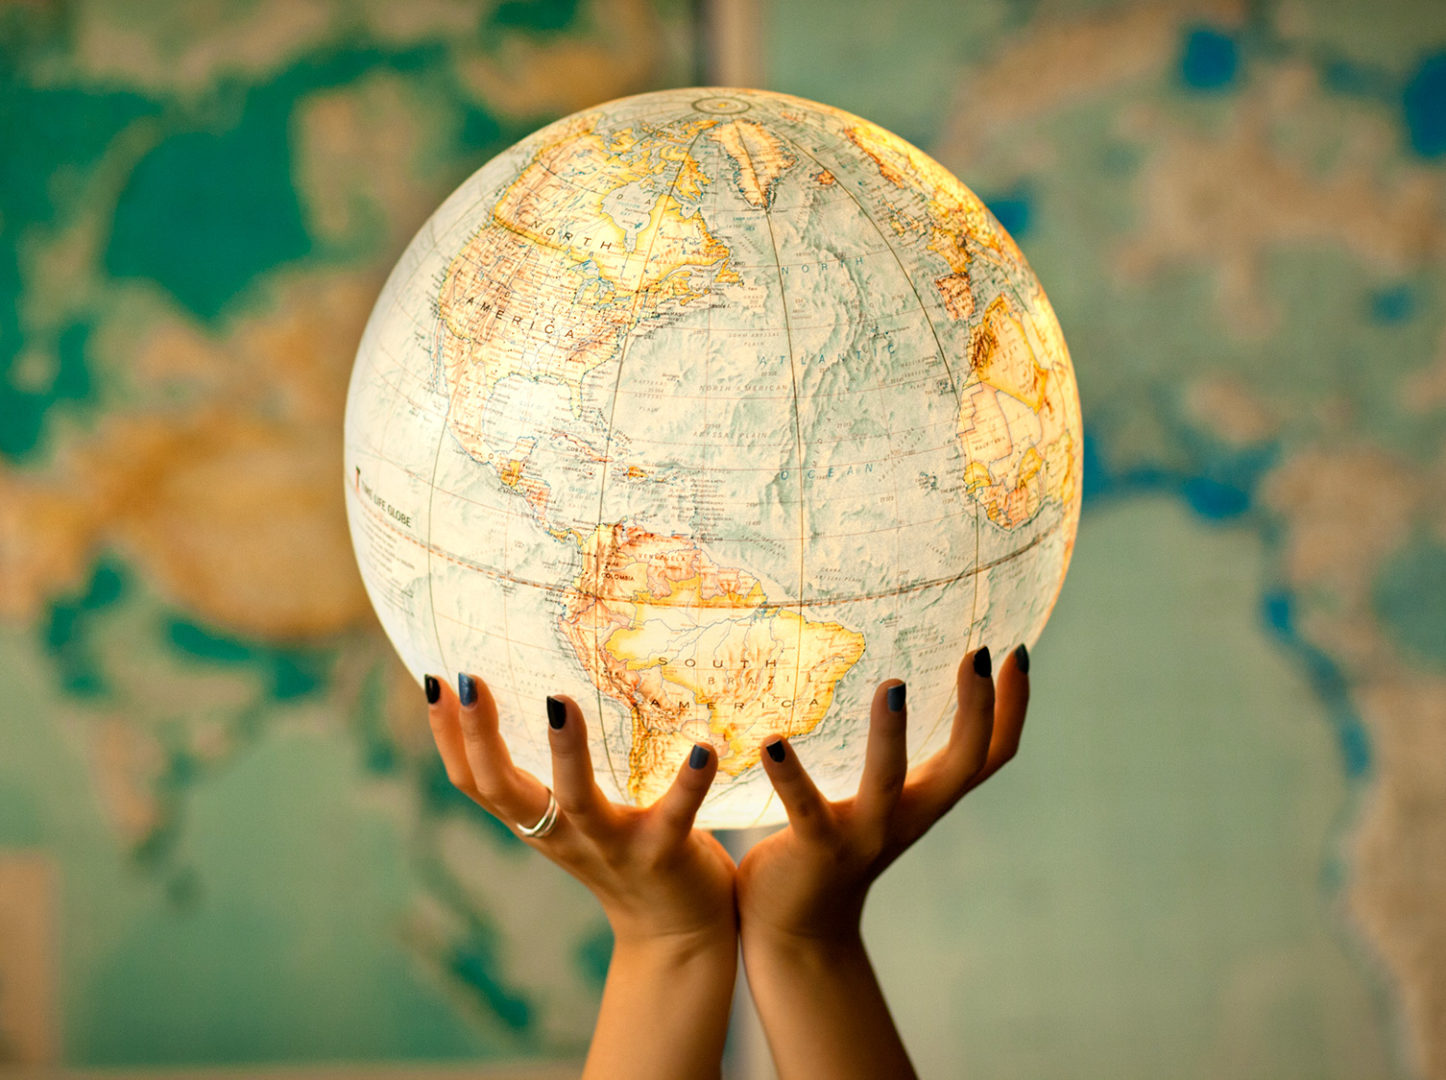 Stock image focusing on hands and globe.